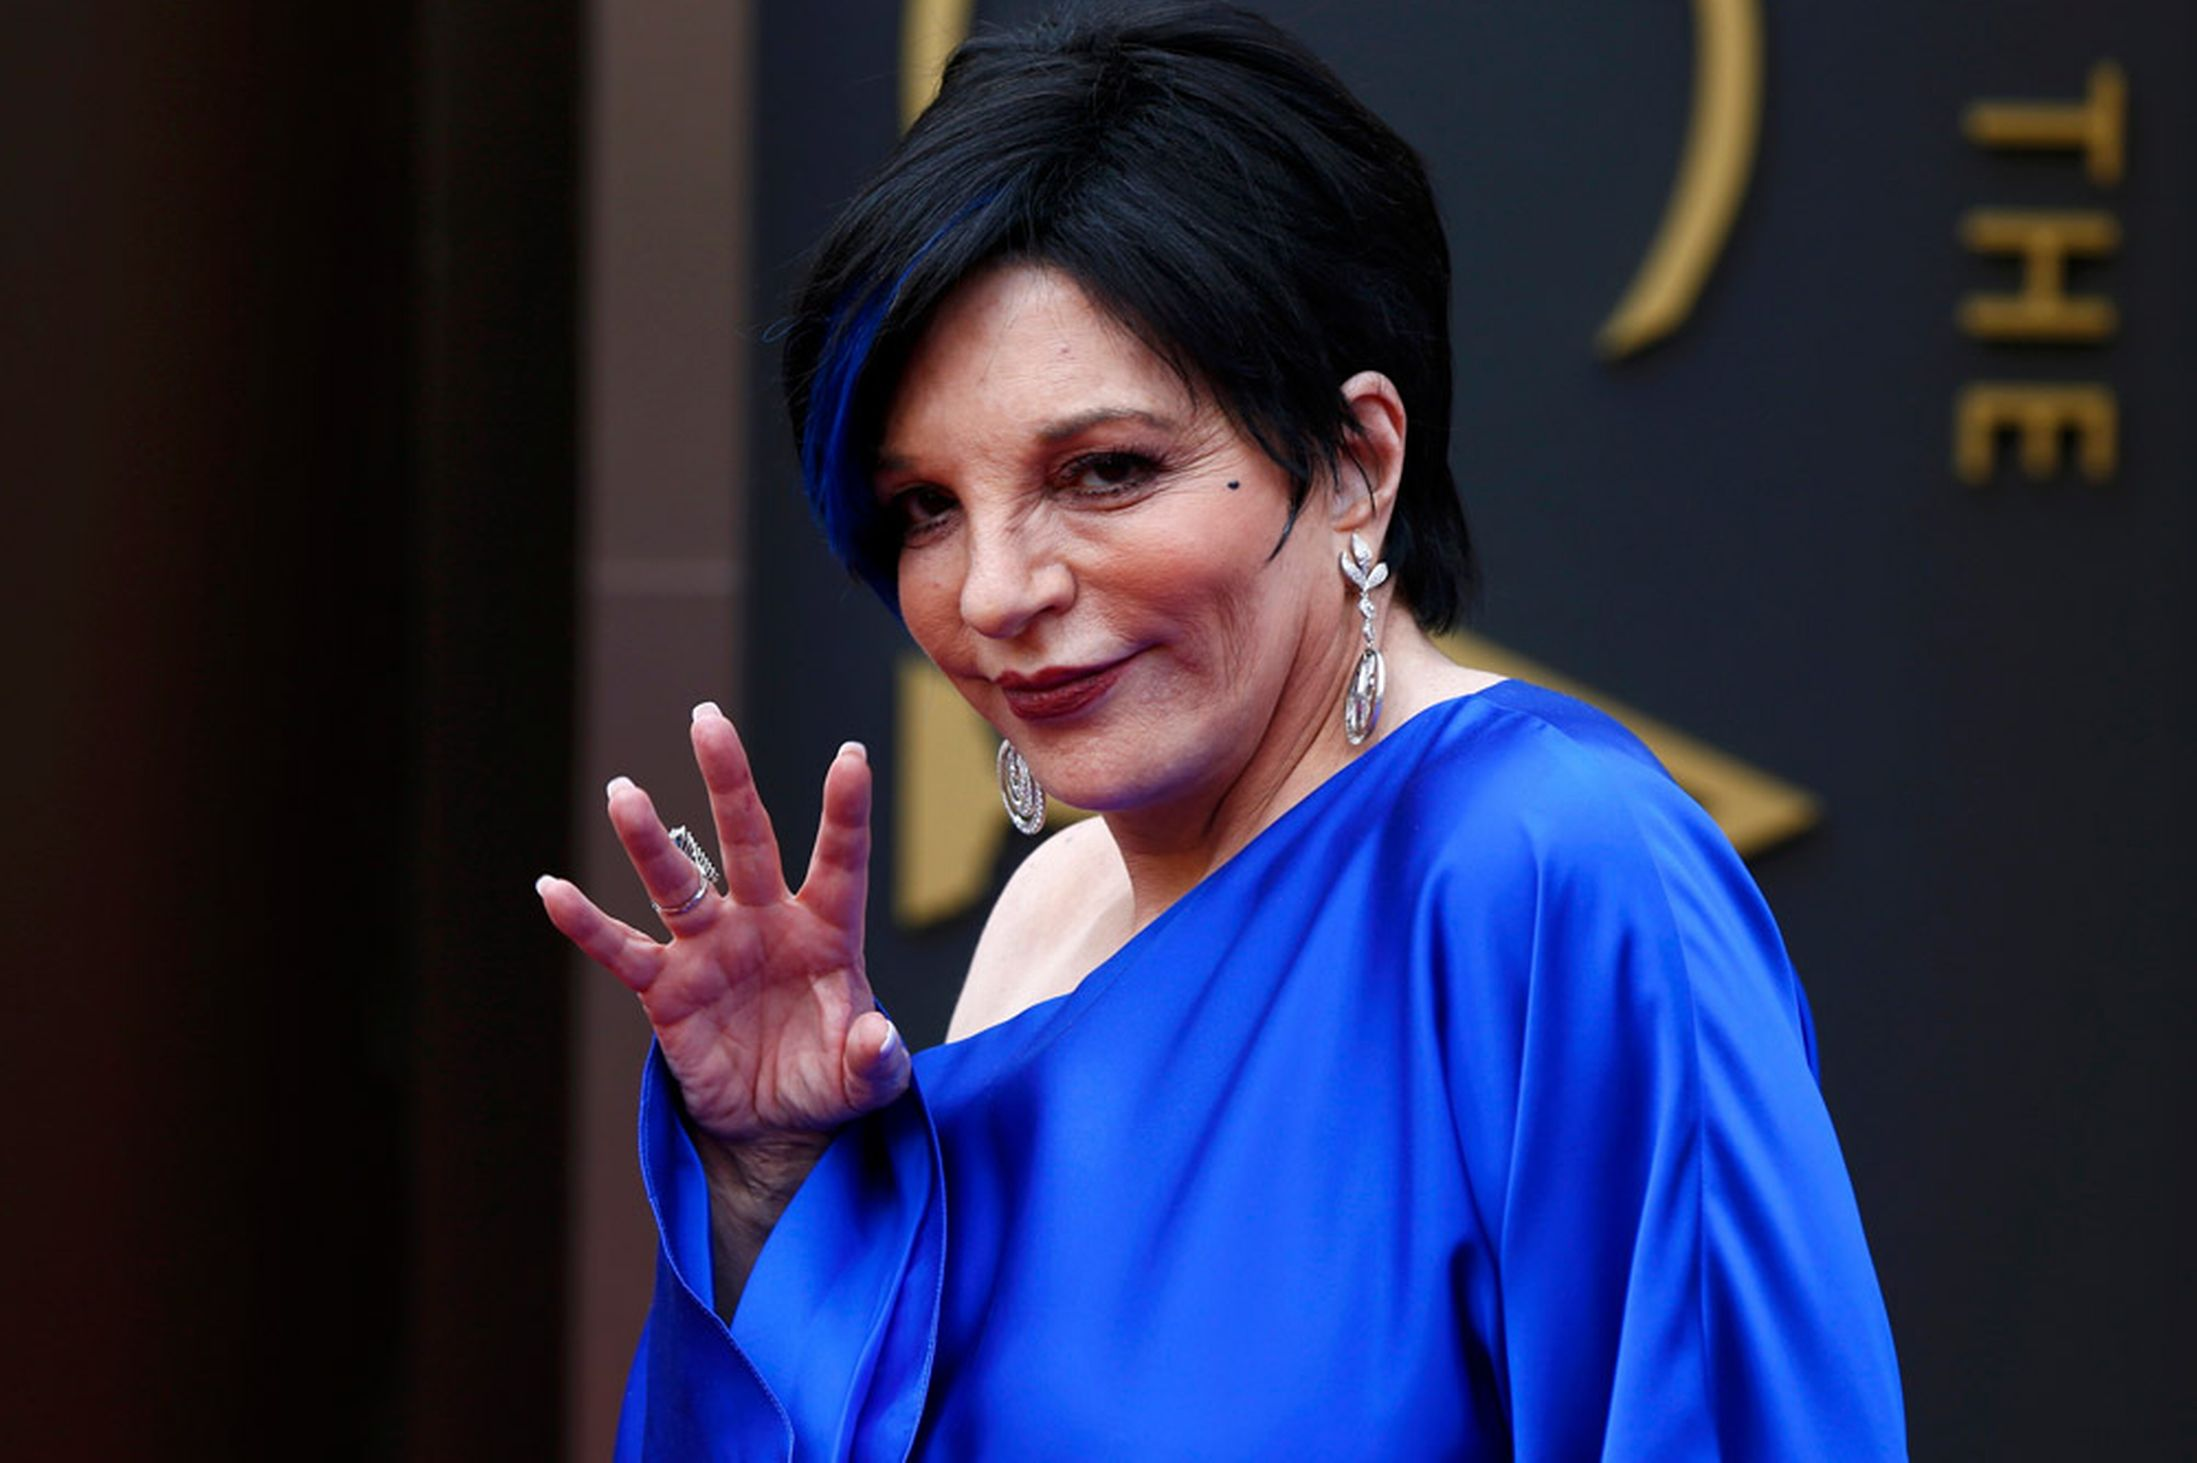 Liza-Minelli-at-the-Oscars_Reuters